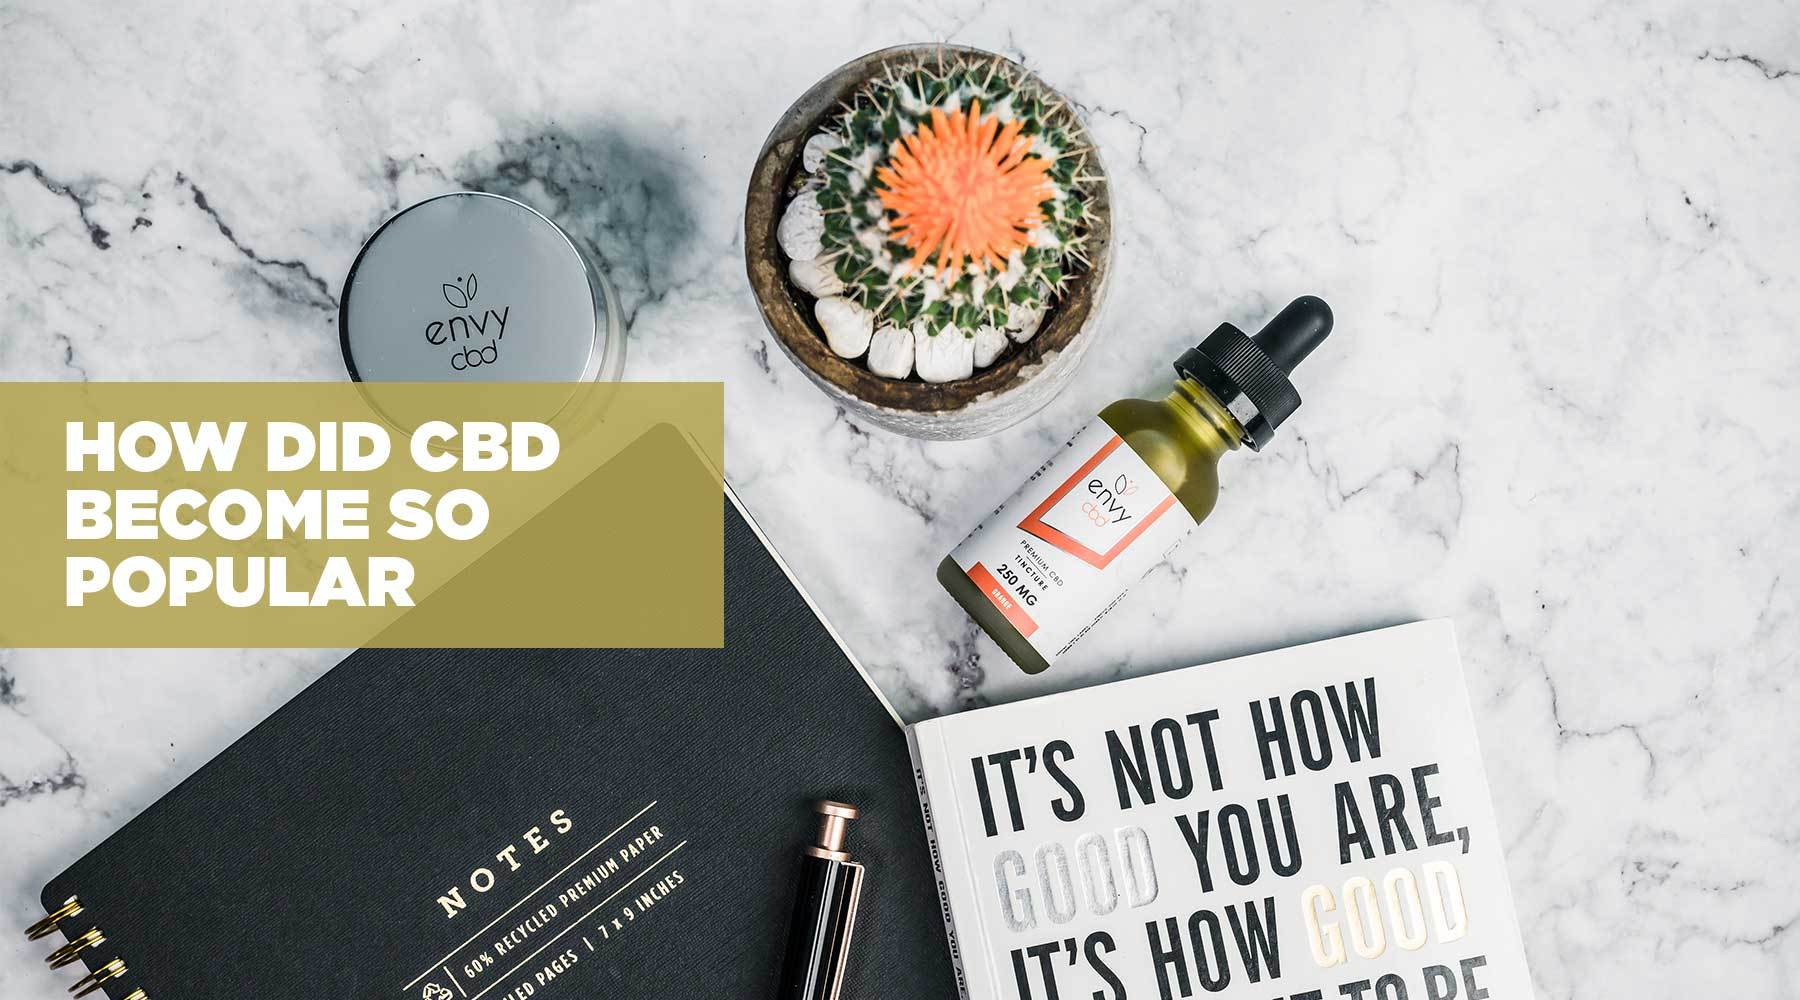 How Did CBD Become So Popular?